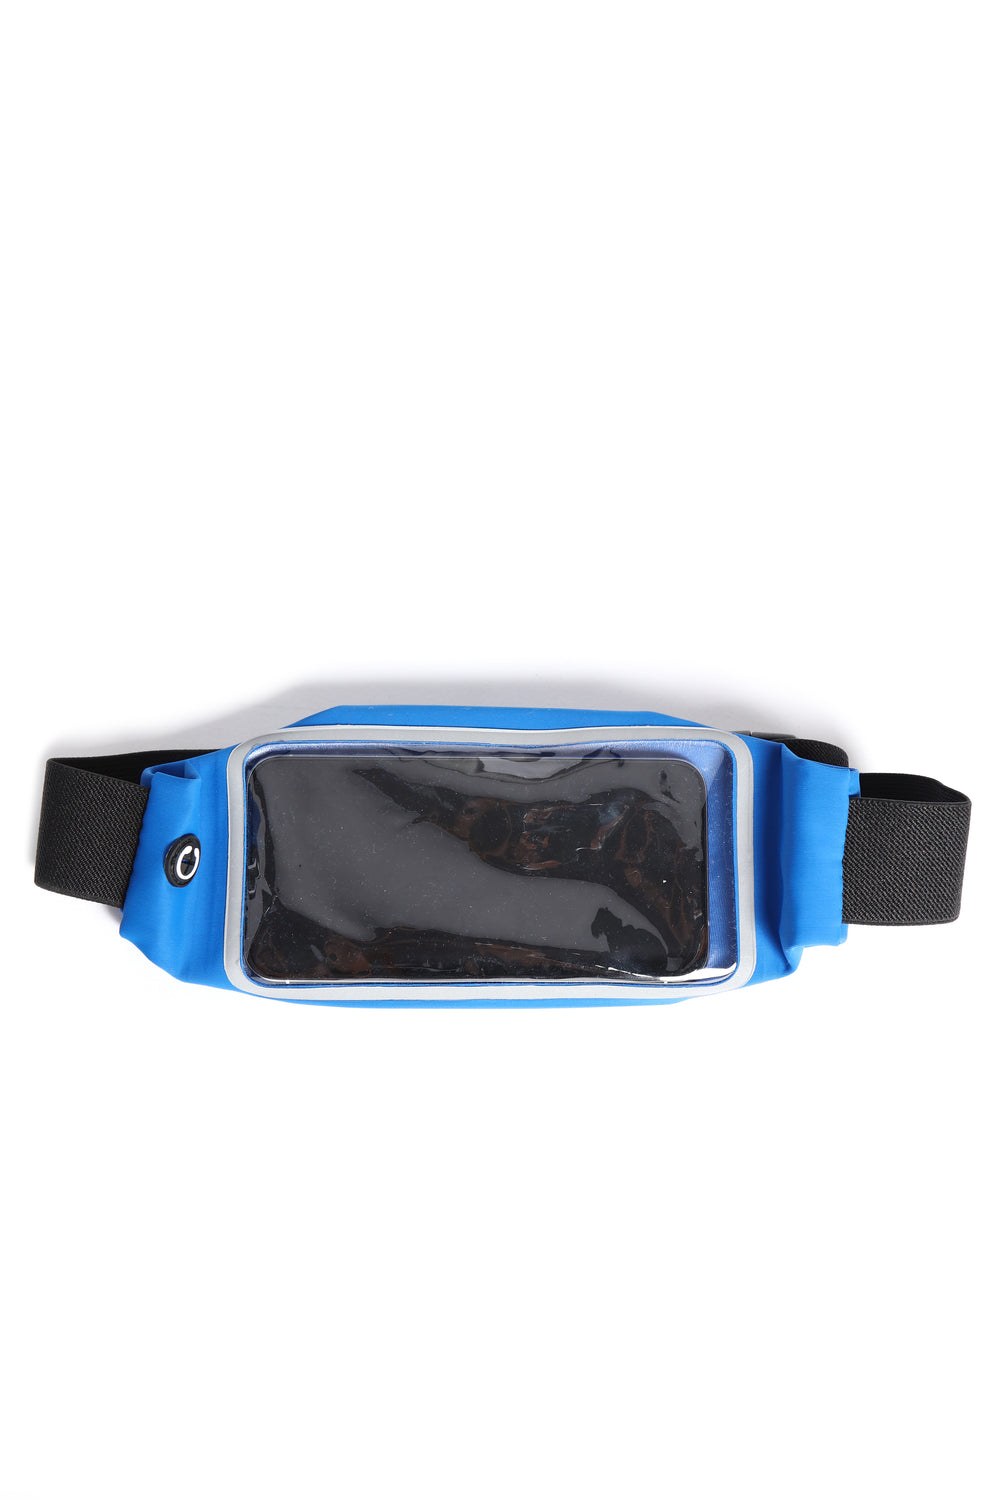 Work It Out Fanny Pack - Blue